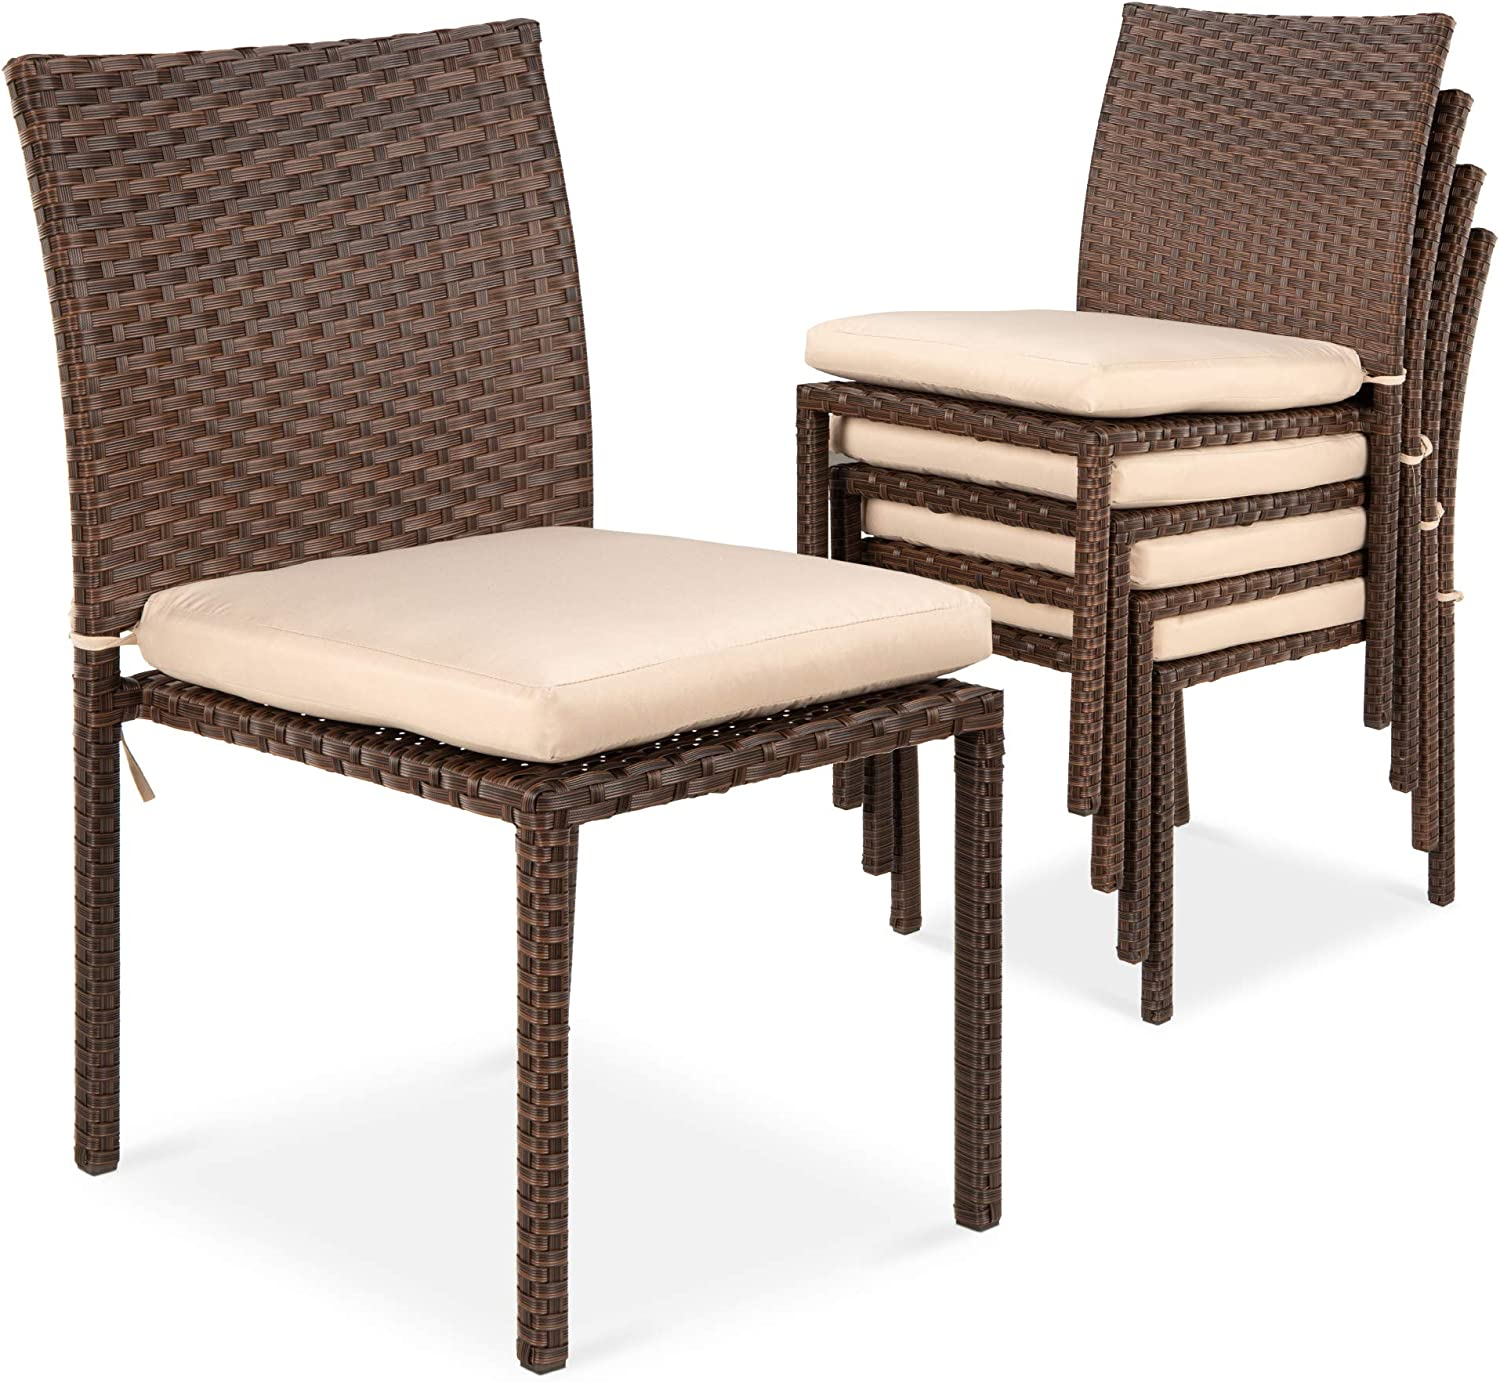 Amazon Com Best Choice Products Set Of 4 Stackable Outdoor Patio Wicker Chairs W Cushions Uv Resistant Finish And Steel Frame Brown Cream Garden Outdoor